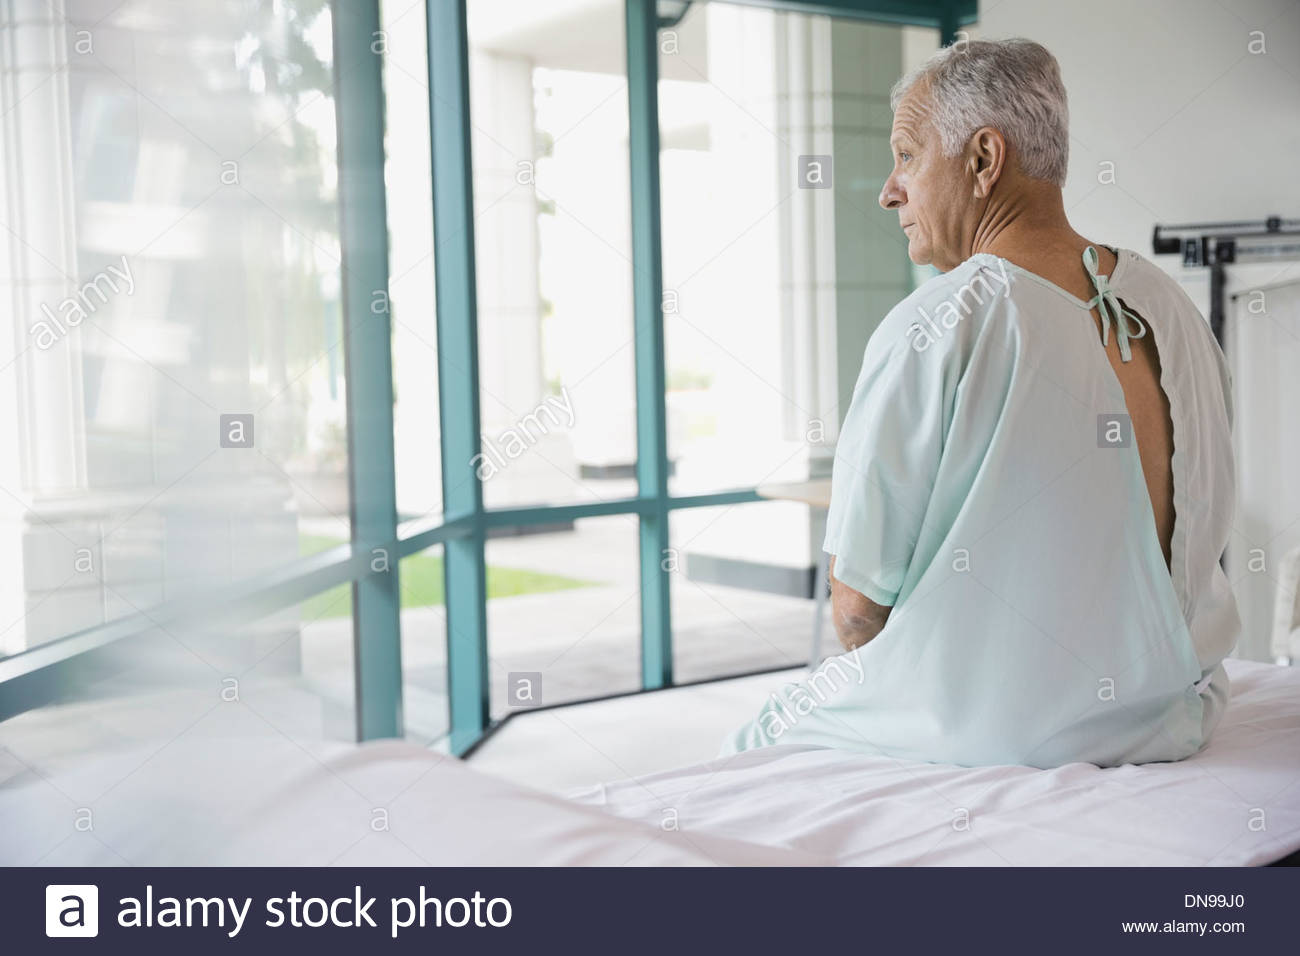 Thoughtful senior patient sitting on hospital bed - Stock Image